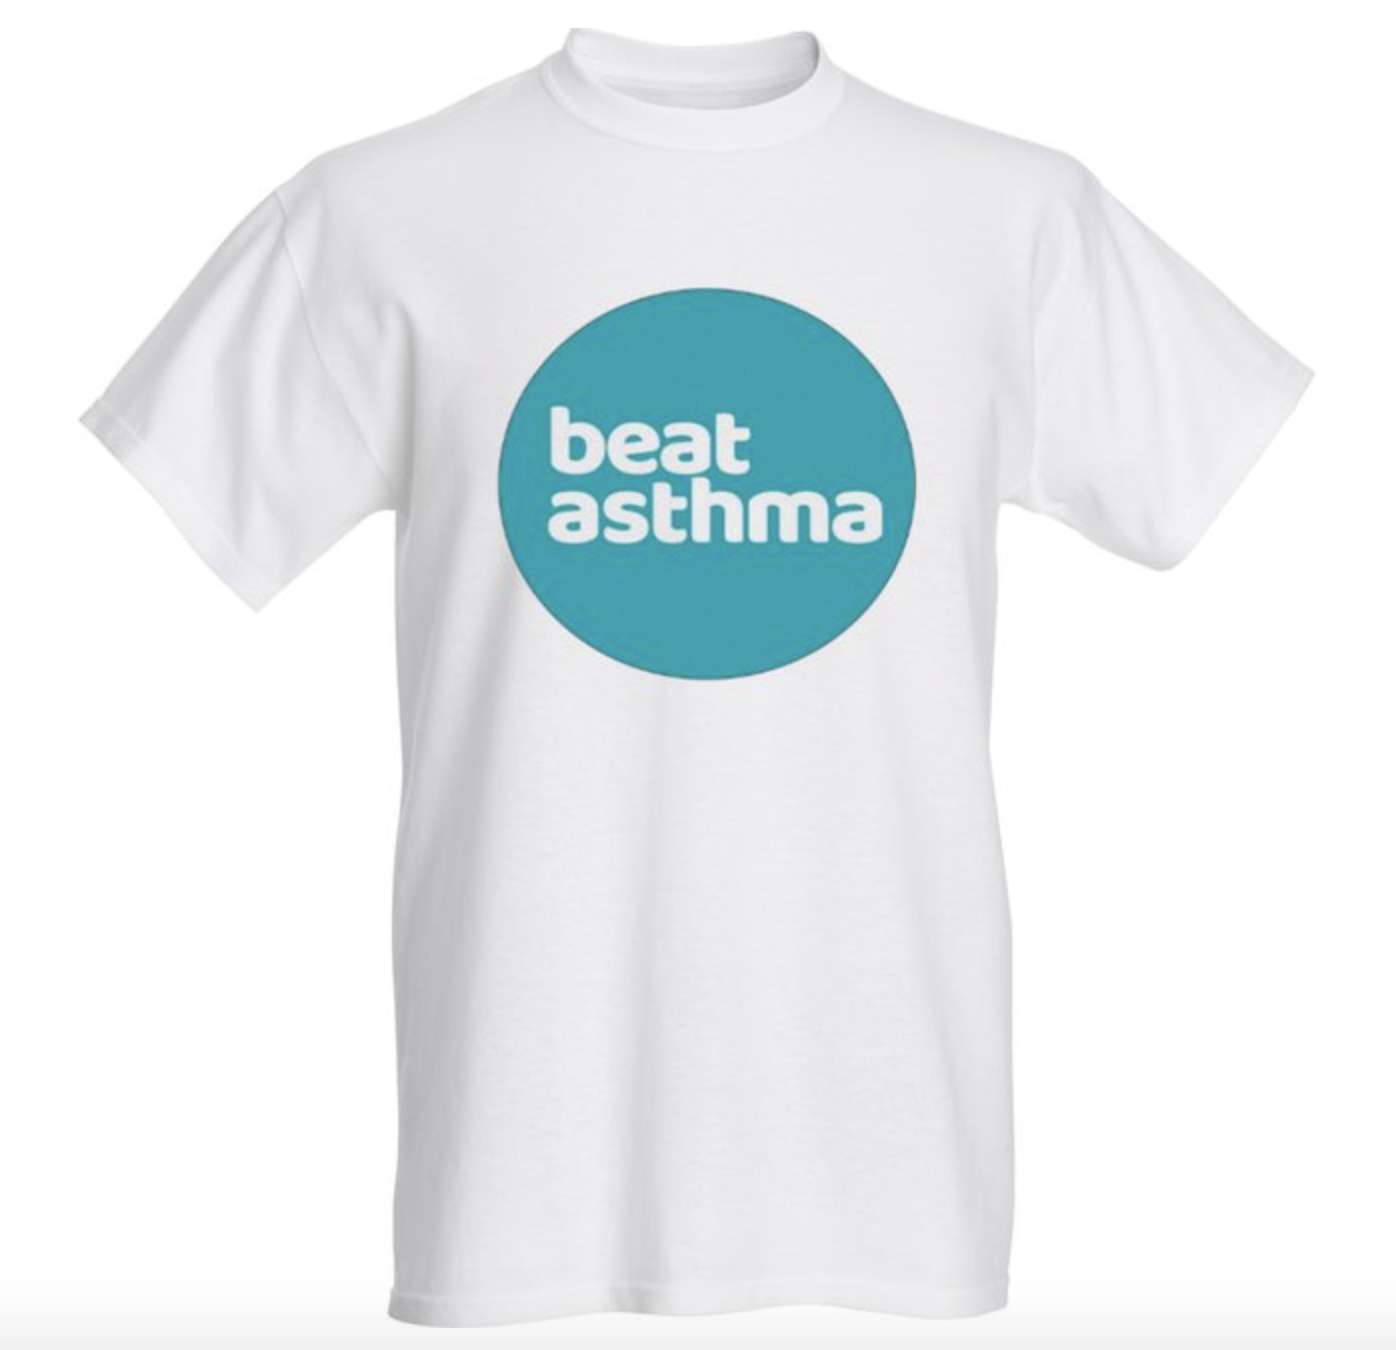 BeatAsthma T-shirt